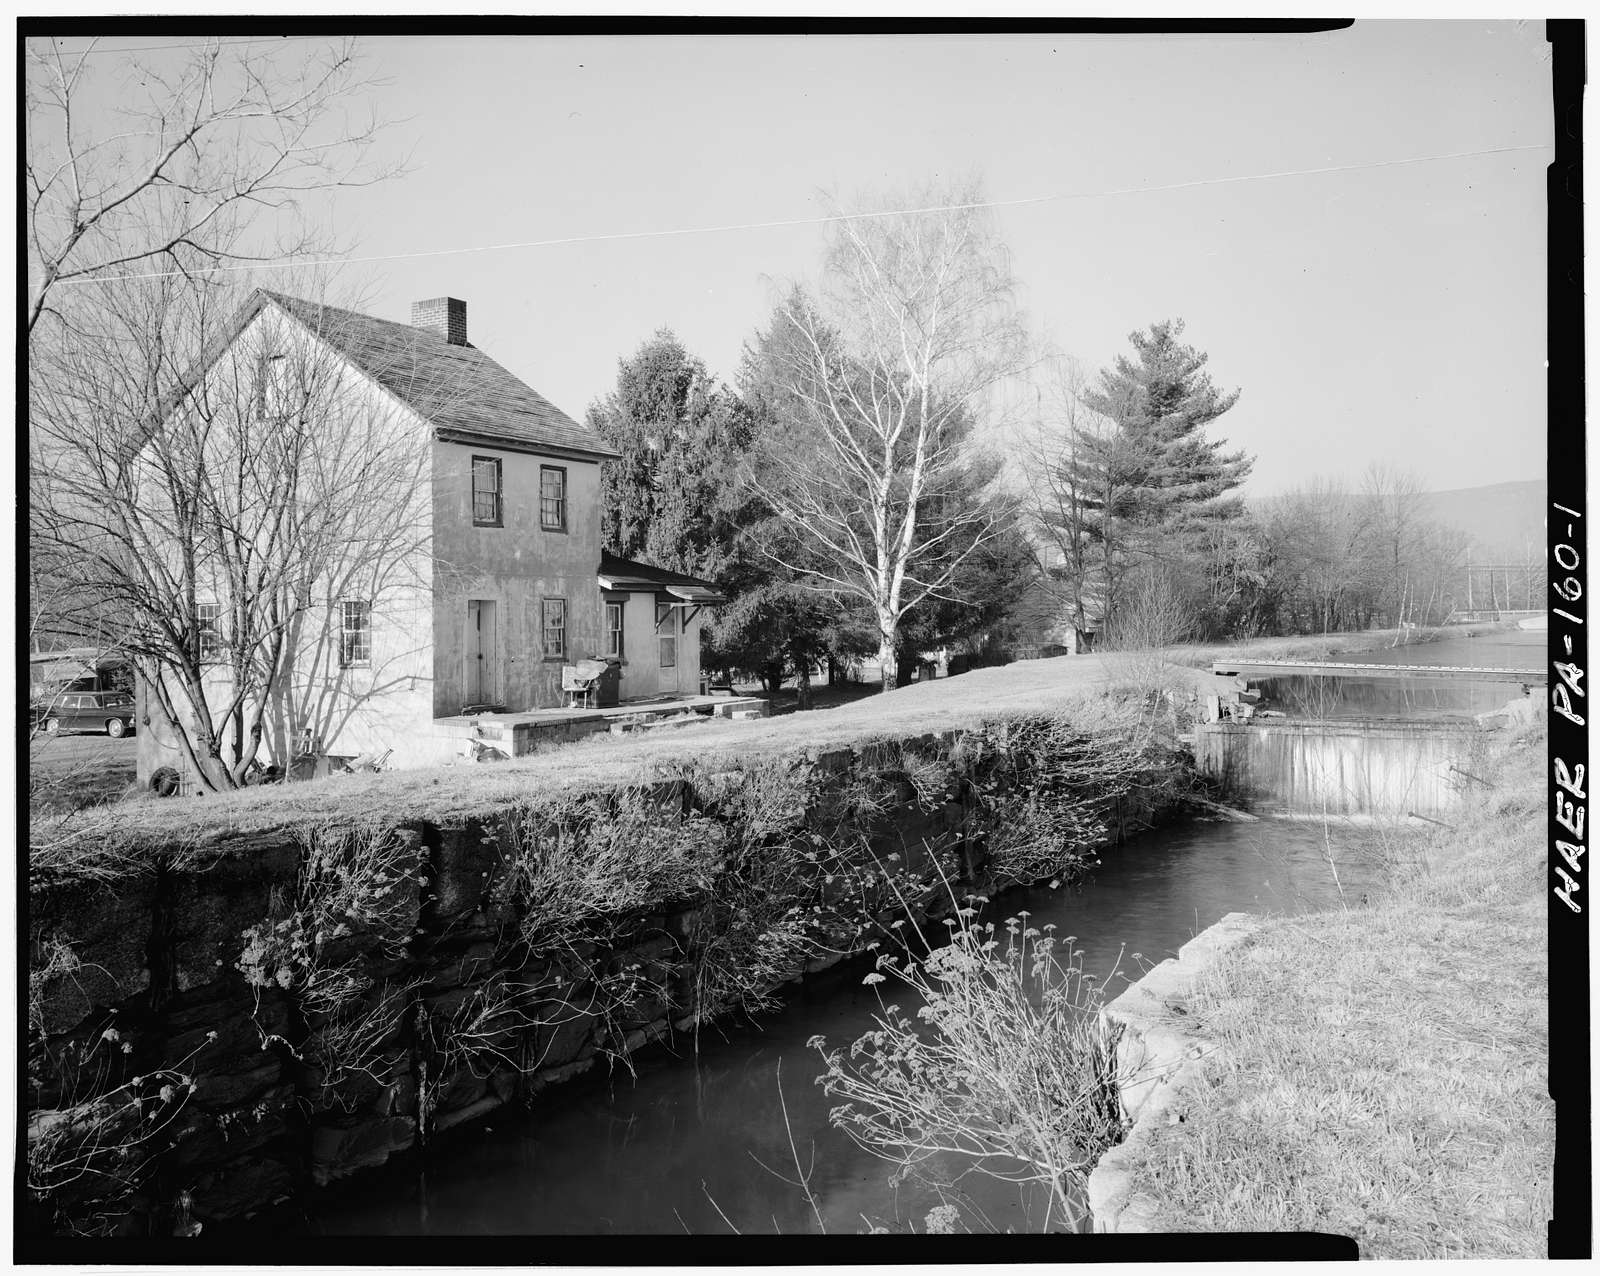 Lehigh Canal, Lock 25, 800 feet south of Walnutport-Slatington Bridge, Walnutport, Northampton County, PA